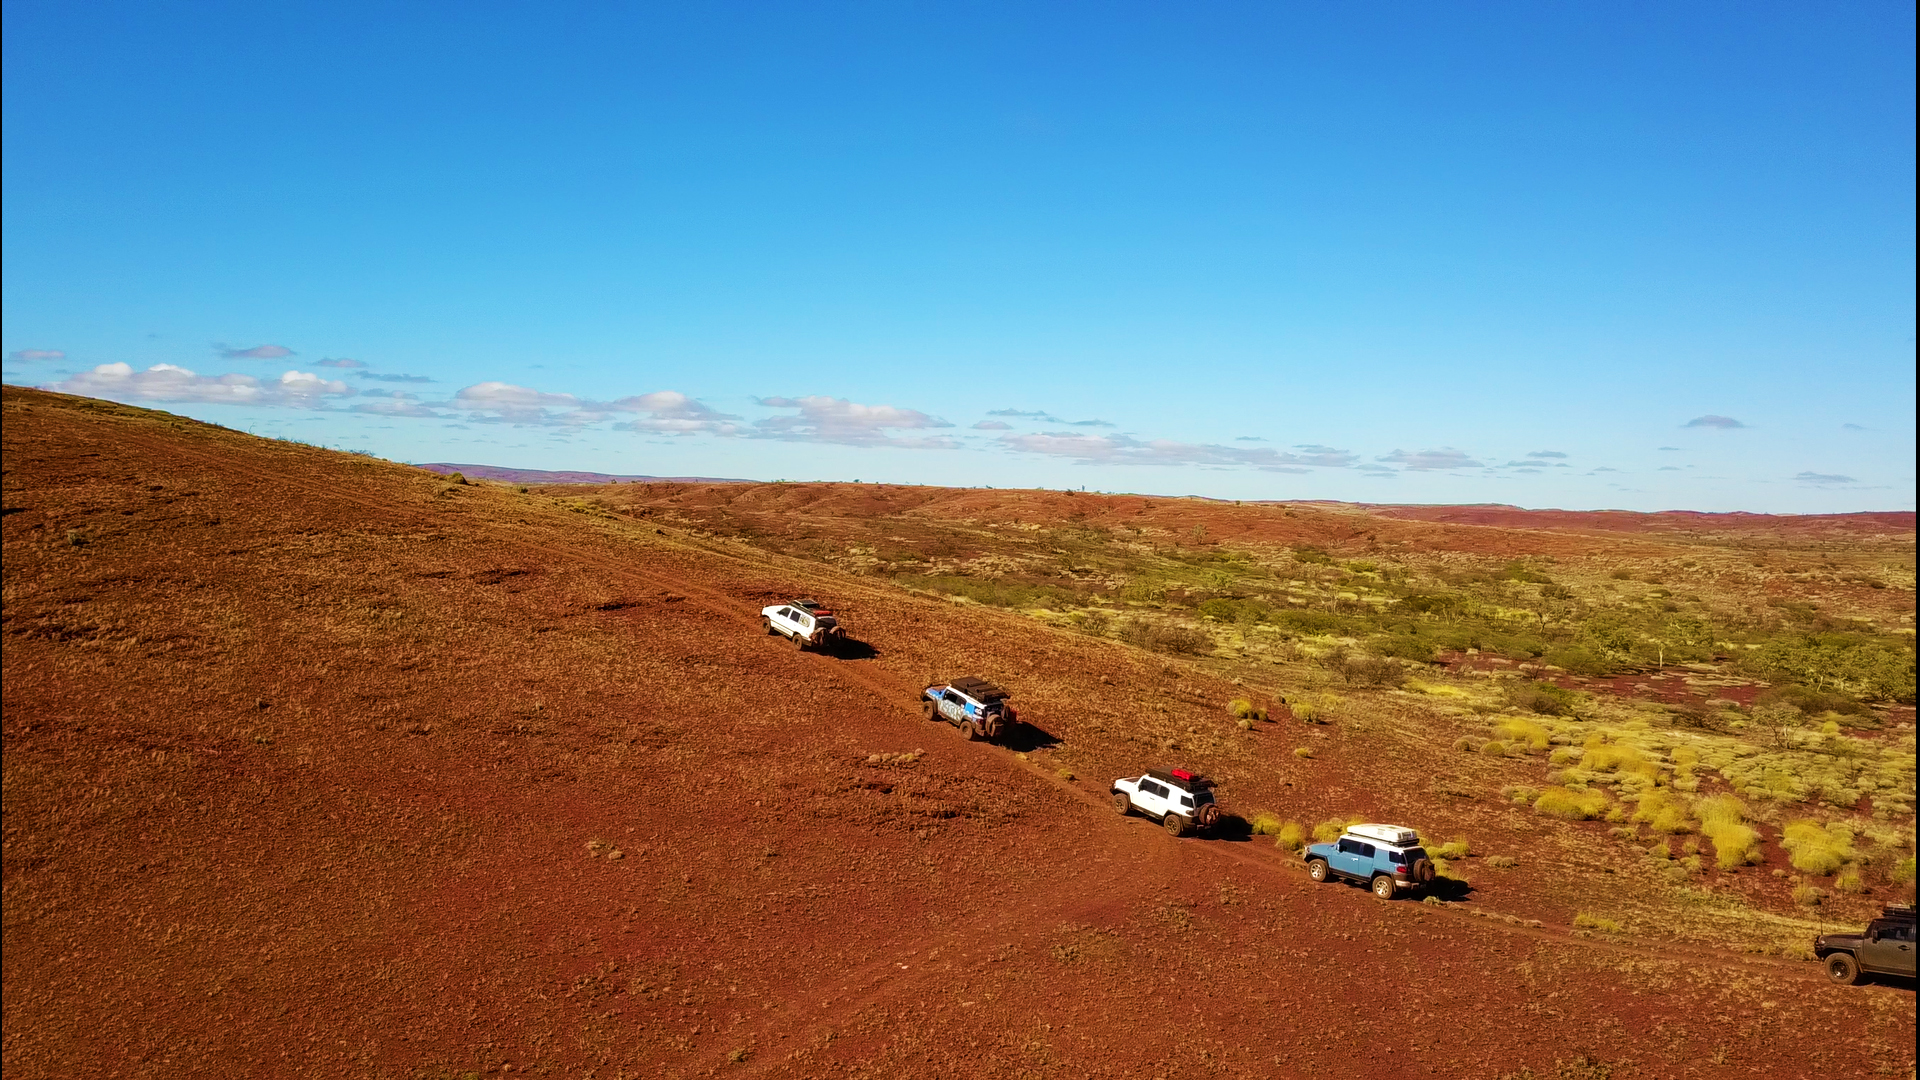 Drones: Now allowed in WA's National Parks – *UPDATED AGAIN*